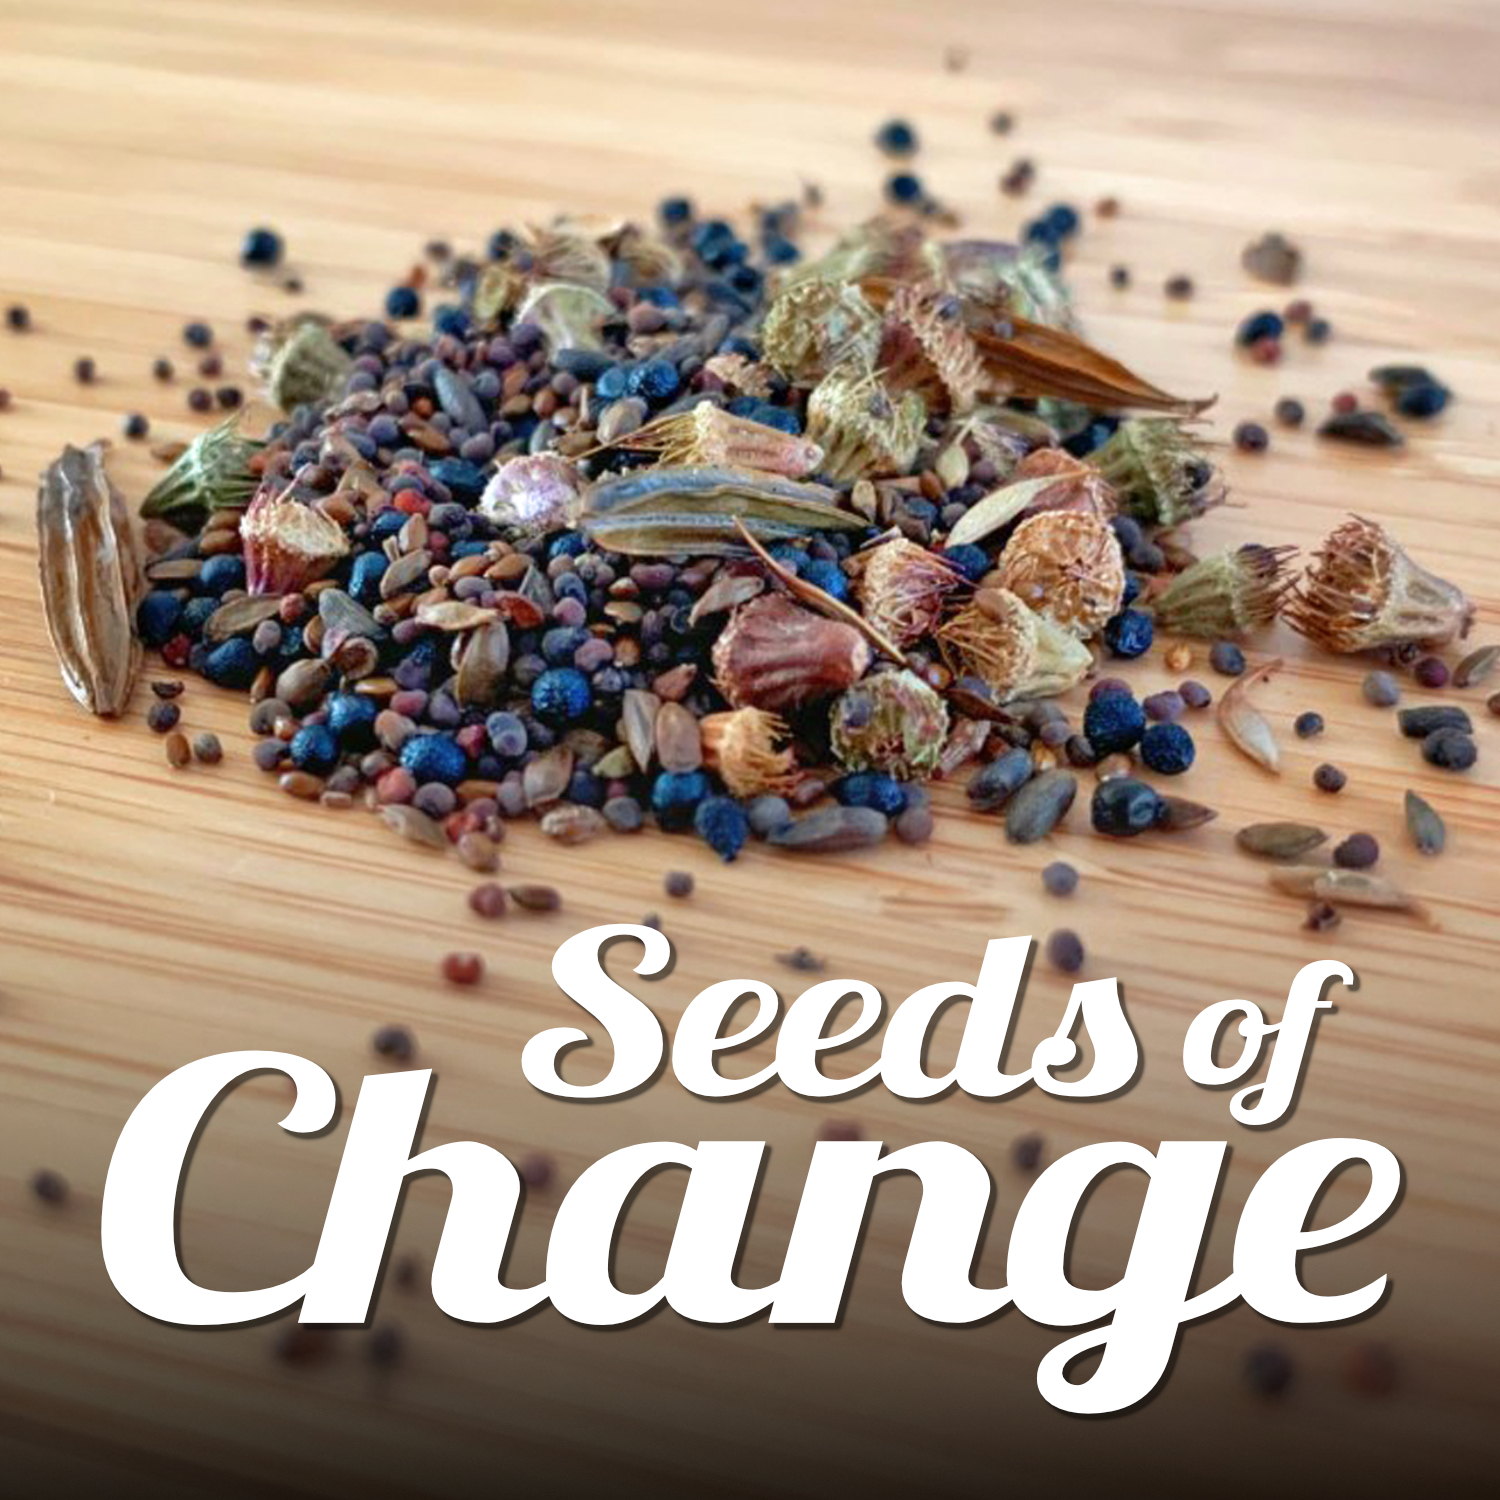 A collection of wildflower seeds pictured on a table. Text reads 'Seeds of Change'